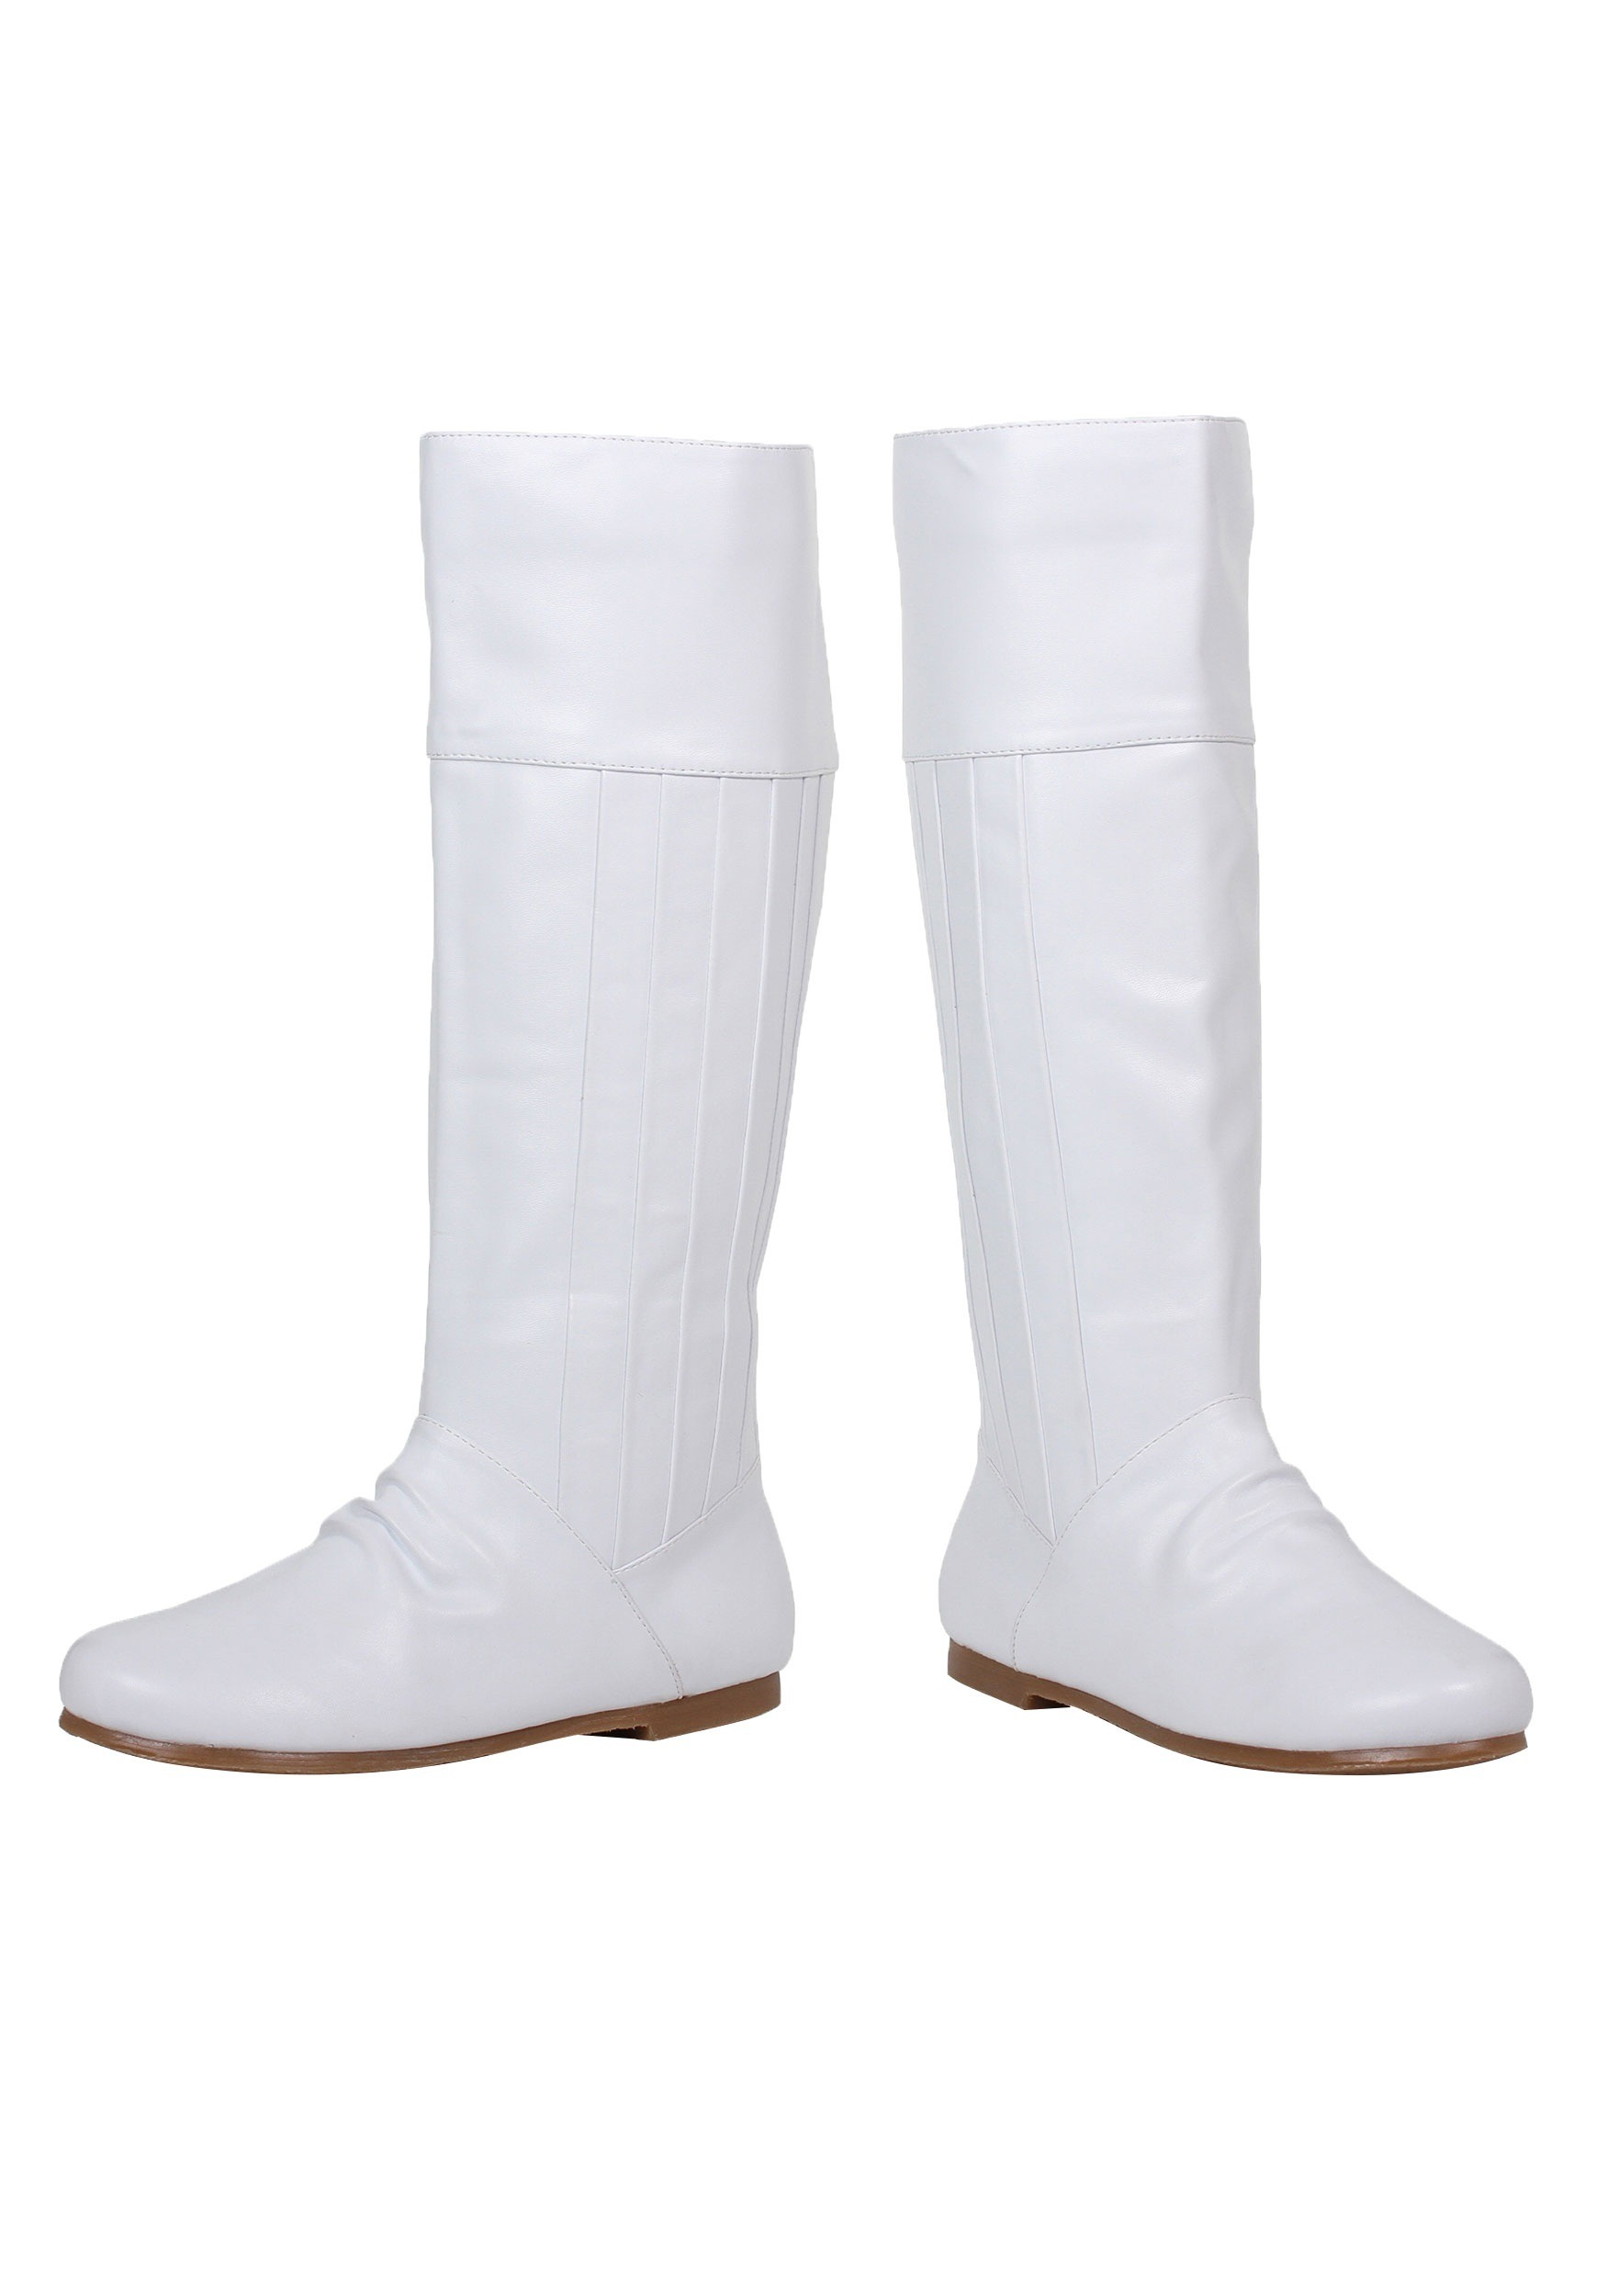 White Princess Boots EE105-LEANNA